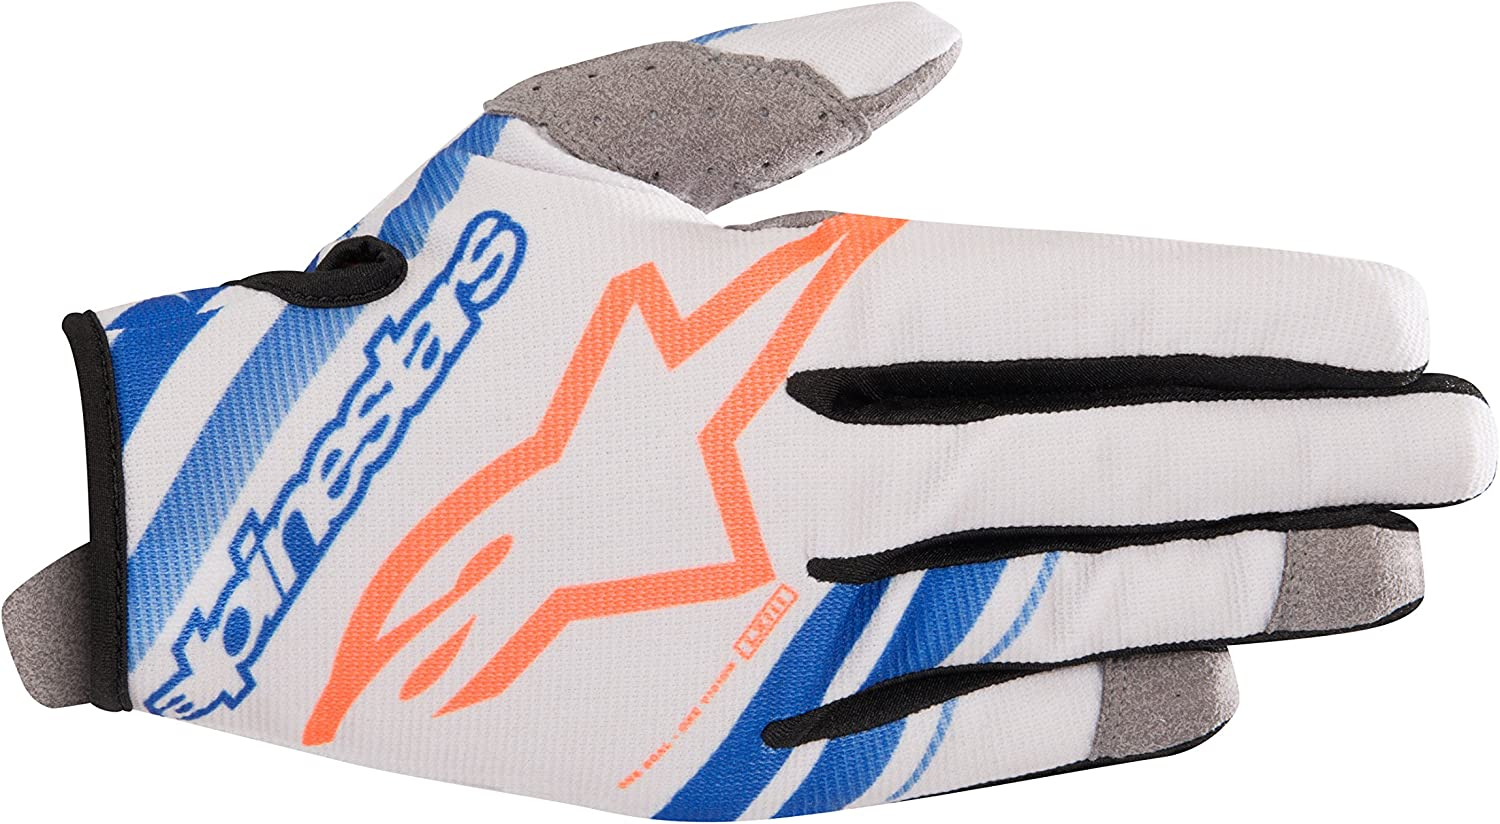 Alpinestars Yellow-Fluorescent-Grey 2019 Radar MX Gloves